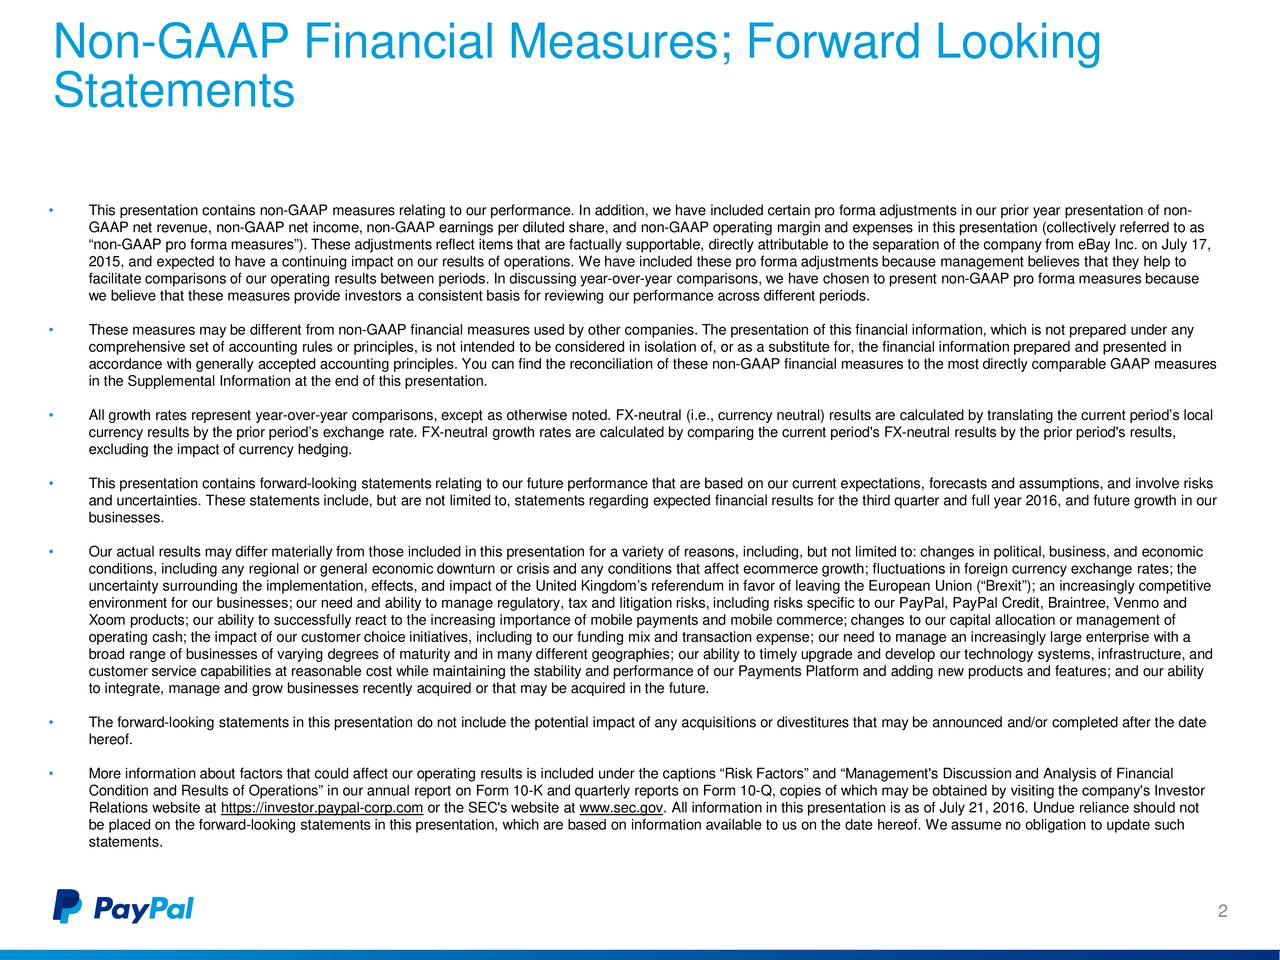 Statements This presentation contains non-GAAP measures relating to our performance. Inaddition, we have included certain pro forma adjustments in our prior year presentation of non- GAAP net revenue, non-GAAP net income, non-GAAP earnings per diluted share, and non-GAAP operating margin and expenses in this presentation (collectively referred to as non-GAAP pro forma measures).These adjustments reflect items that are factually supportable, directly attributable to the separation of the company from eBay Inc.on July 17, 2015, and expected to have a continuing impact on our results of operations. We have included these pro forma adjustments because management believes that they help to facilitate comparisons of our operating results between periods.In discussing year-over-year comparisons, we have chosen to present non-GAAP pro forma measures because we believe that these measures provide investors a consistent basis for reviewing our performance across different periods. These measures may be different from non-GAAP financial measures used by other companies. The presentation of this financial information, which is not prepared under any comprehensive set of accounting rules or principles, is not intended to be considered in isolation of, or as a substitute for, the financial information prepared and presented in accordance with generally accepted accounting principles. You can find the reconciliation of these non-GAAP financial measures to the most directly comparable GAAP measures in the Supplemental Information at the end of this presentation. All growth rates represent year-over-year comparisons, except as otherwise noted. FX-neutral (i.e., currency neutral) results are calculated by translating the current periods local currency results by the prior periods exchange rate. FX-neutral growth rates are calculated by comparing the current period's FX-neutral results by the prior period's results, excluding the impact of currency hedging. This presentation contains forward-looking statements relating to our future performance that are based on our current expectations, forecasts and assumptions, and involve risks and uncertainties. These statements include, but are not limited to, statements regarding expected financial results for thethird quarter and full year 2016, and future growth in our businesses. Our actual results may differ materially from those included in this presentation for a variety of reasons, including, but not limited to: changes in political, business, and economic conditions, including any regional or general economic downturn or crisis and any conditions that affect ecommerce grl ctuations in foreign currency exchange rates; the uncertainty surrounding the implementation, effects, and impact of the United Kingdoms referendum in favor of leaving the European Union (Brexit); an increasingly competitive environment for our businesses; our need and ability to manage regulatory, tax and litigation risks, including risks specific to our PayPal, PayPal Credit, Braintree, Venmo and Xoom products; our ability to successfully react to the increasing importance of mobile payments and mobile commerce; changesto our capital allocation or management of operating cash; the impact of our customer choice initiatives, including to our fundingmix and transaction expense; our need to manage an increasingly large enterprise with a broad range of businesses of varying degrees of maturity and in many different geographies; our ability to timely upgrade anddevelop our technology systems, infrastructure, and customer service capabilities at reasonable cost while maintaining the stability and performance of our Payments Platform andadding new products and features; and our ability to integrate, manage and grow businesses recently acquired or that may be acquired in the future. The forward-looking statements in this presentation do not include the potential impact of any acquisitions or divestitures thatmay be announced and/or completed after the date hereof. More information about factors that could affect our operating results is included under the captions Risk Factors and Management's Discussion and Analysis of Financial Condition and Results of Operations in our annual report on Form 10-K and quarterly reports on Form 10-Q, copies of which may be obtained by visiting the company's Investor Relations website at https://investor.paypal-corp.com or the SEC's website at www.sec.gov. All information in this presentation is as of July 21, 2016. Undue reliance should not be placed on the forward-looking statements in this presentation, which are based on information available to us on the date hereof. We assume no obligation to update such statements. 2